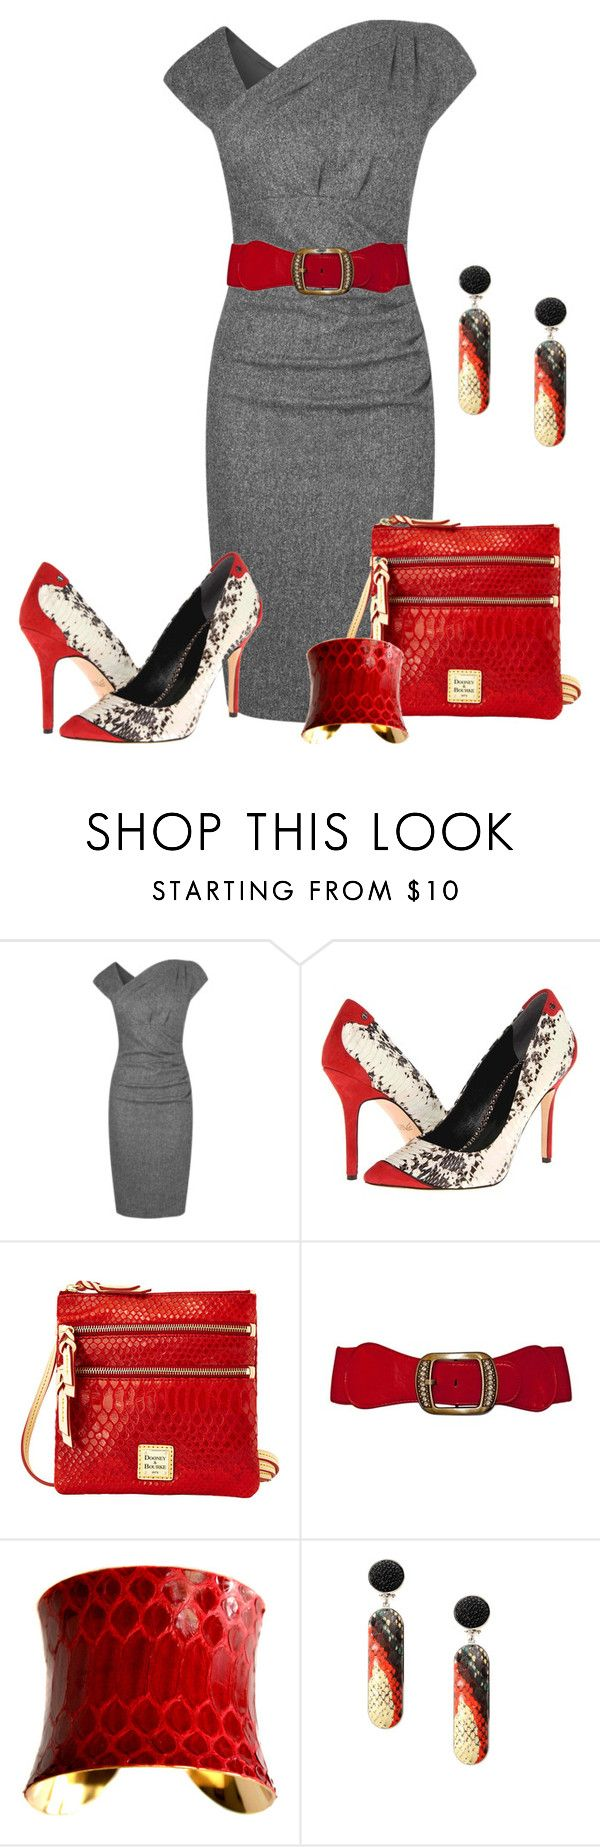 """""""Snakeskin Accessories"""" by karen-keathley ❤ liked on Polyvore featuring L.K.Bennett, Rachel Roy, Dooney & Bourke, UNEARTHED and Angelo Figus"""